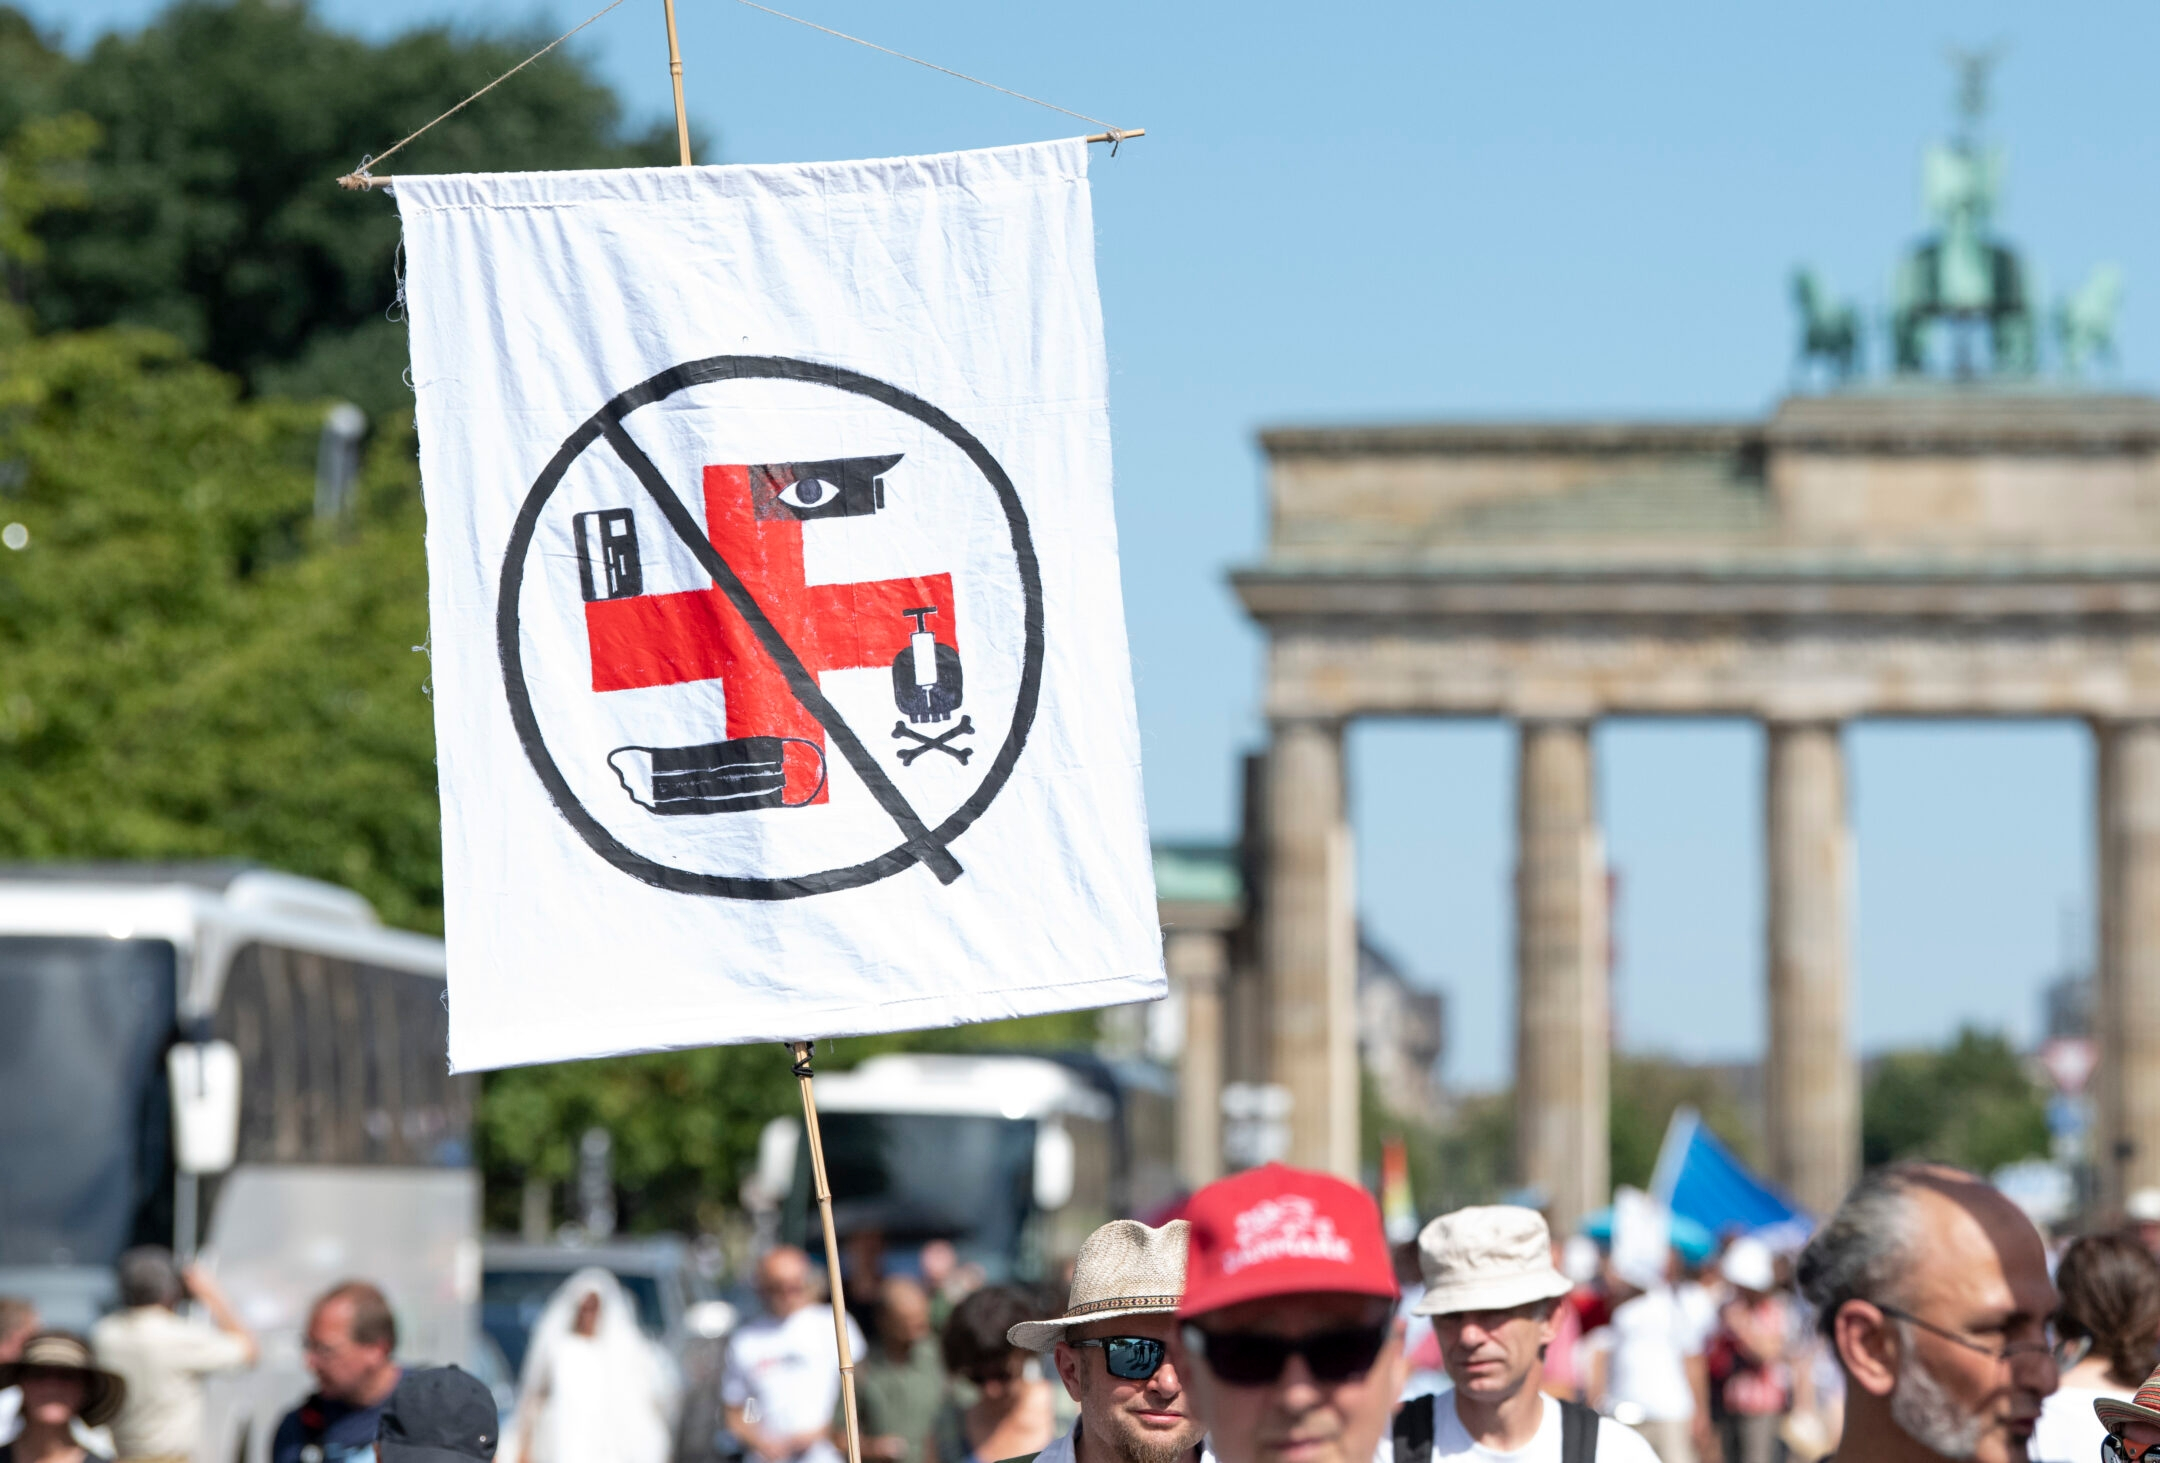 Berlin rally against coronavirus rules features neo-Nazi supporters, anti-Semitic displays